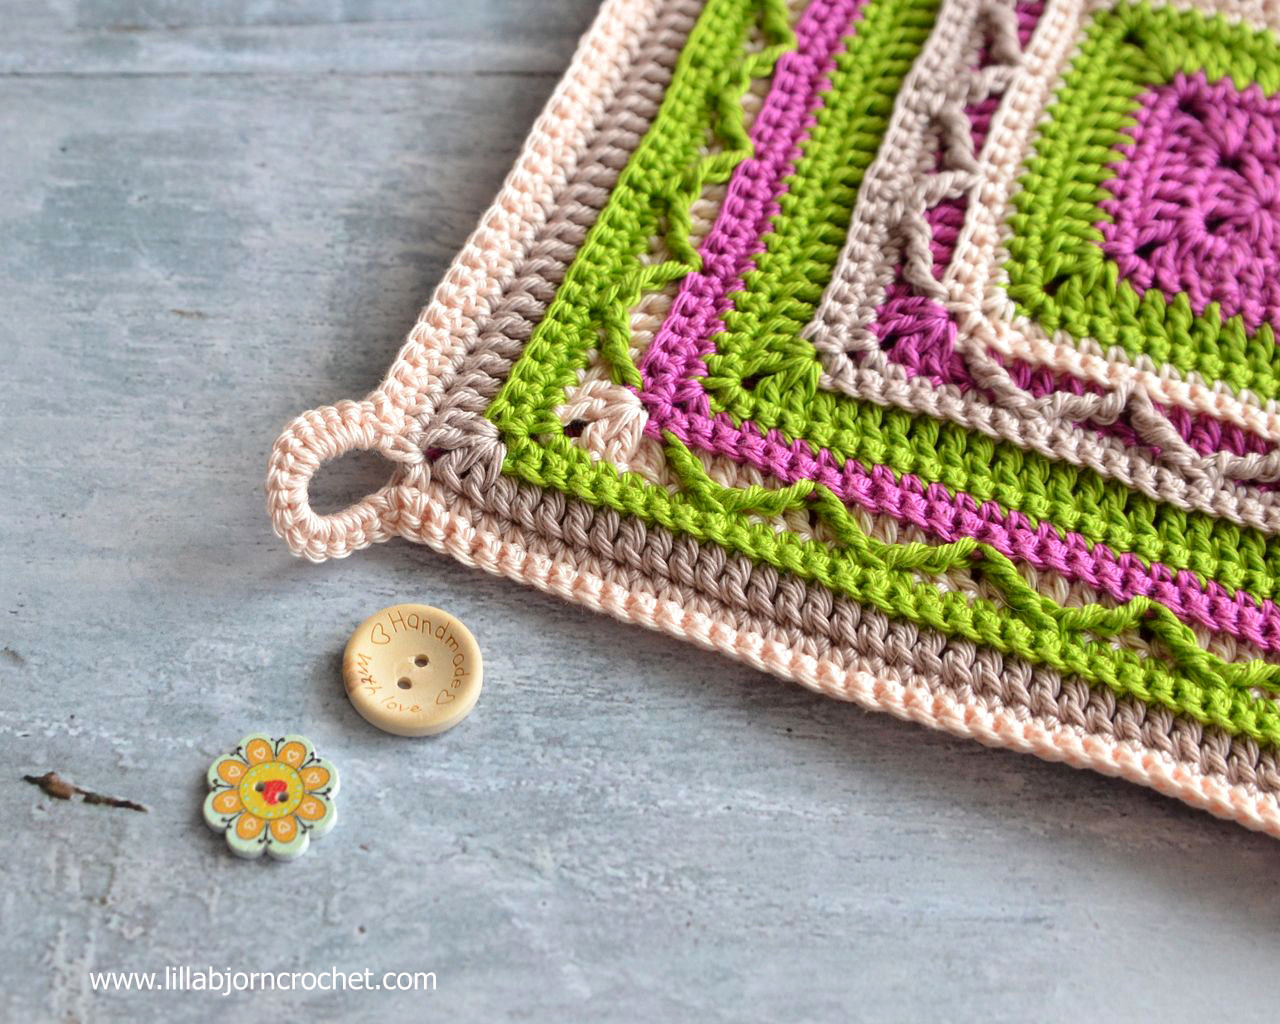 Crochet Potholder Pattern Elegant Crochet Potholders Art In Small Free Pattern Of Amazing 43 Pictures Crochet Potholder Pattern